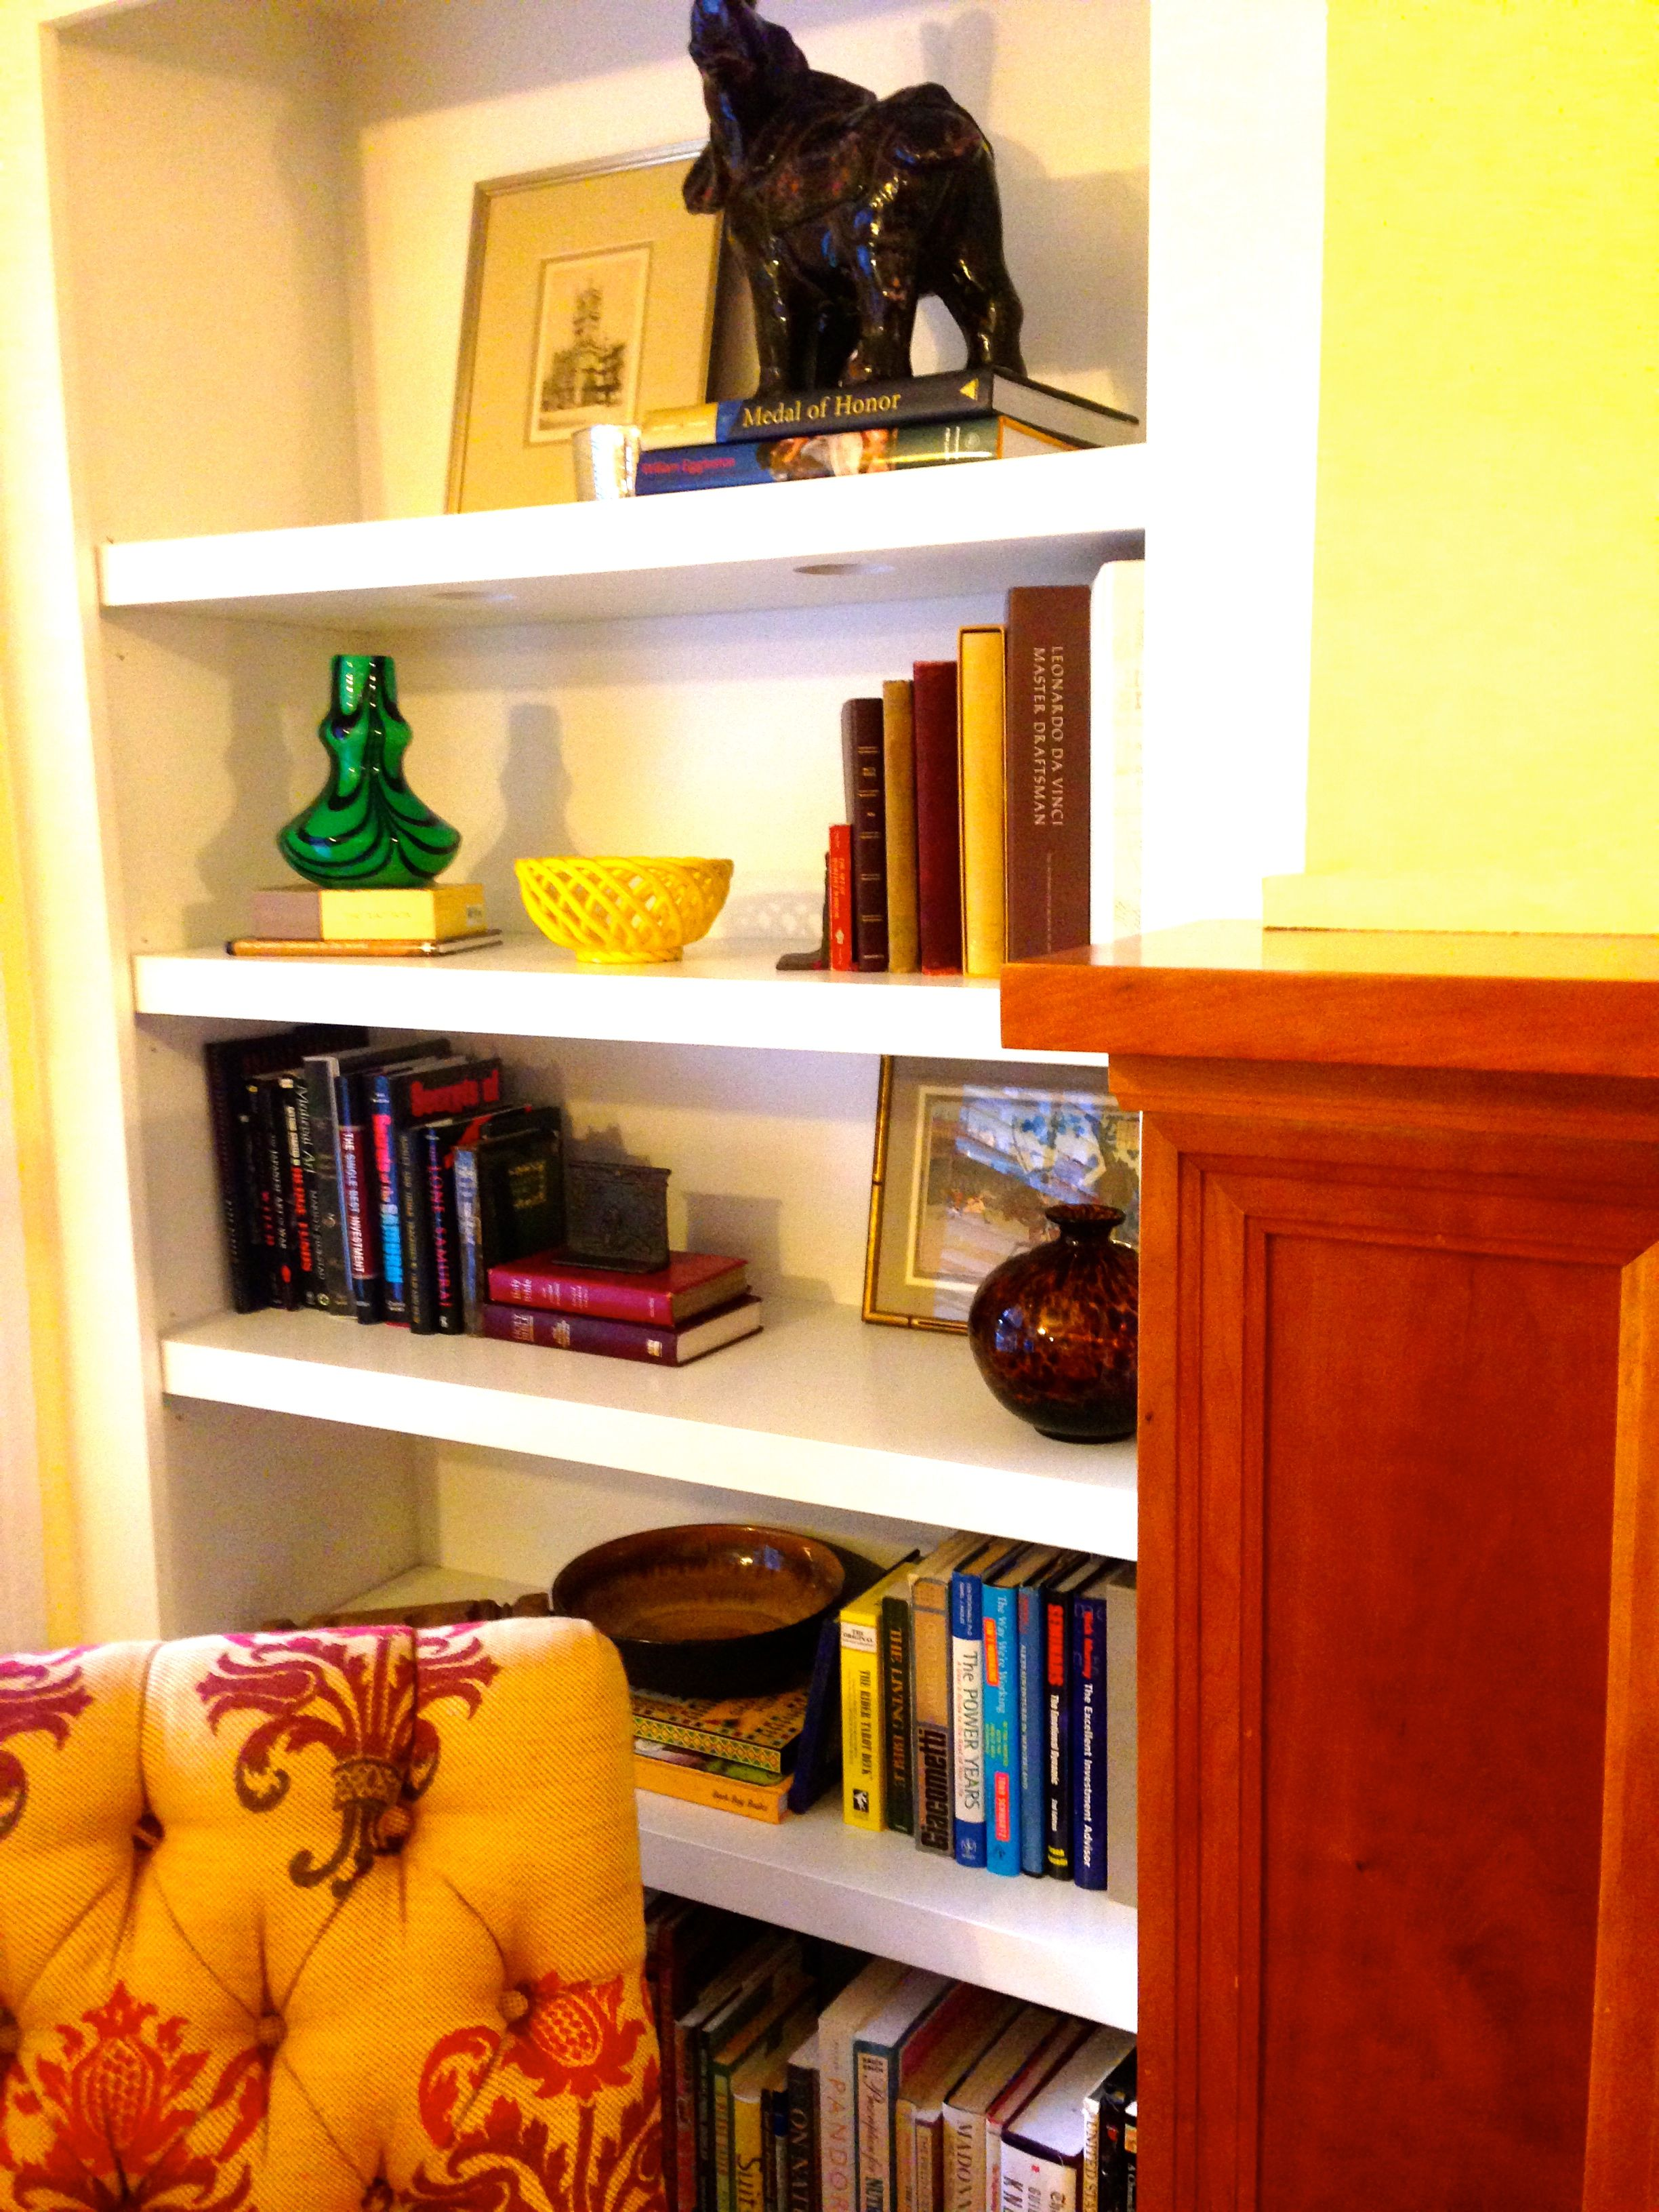 Staging Bookcases: Another Amazing Class Project!